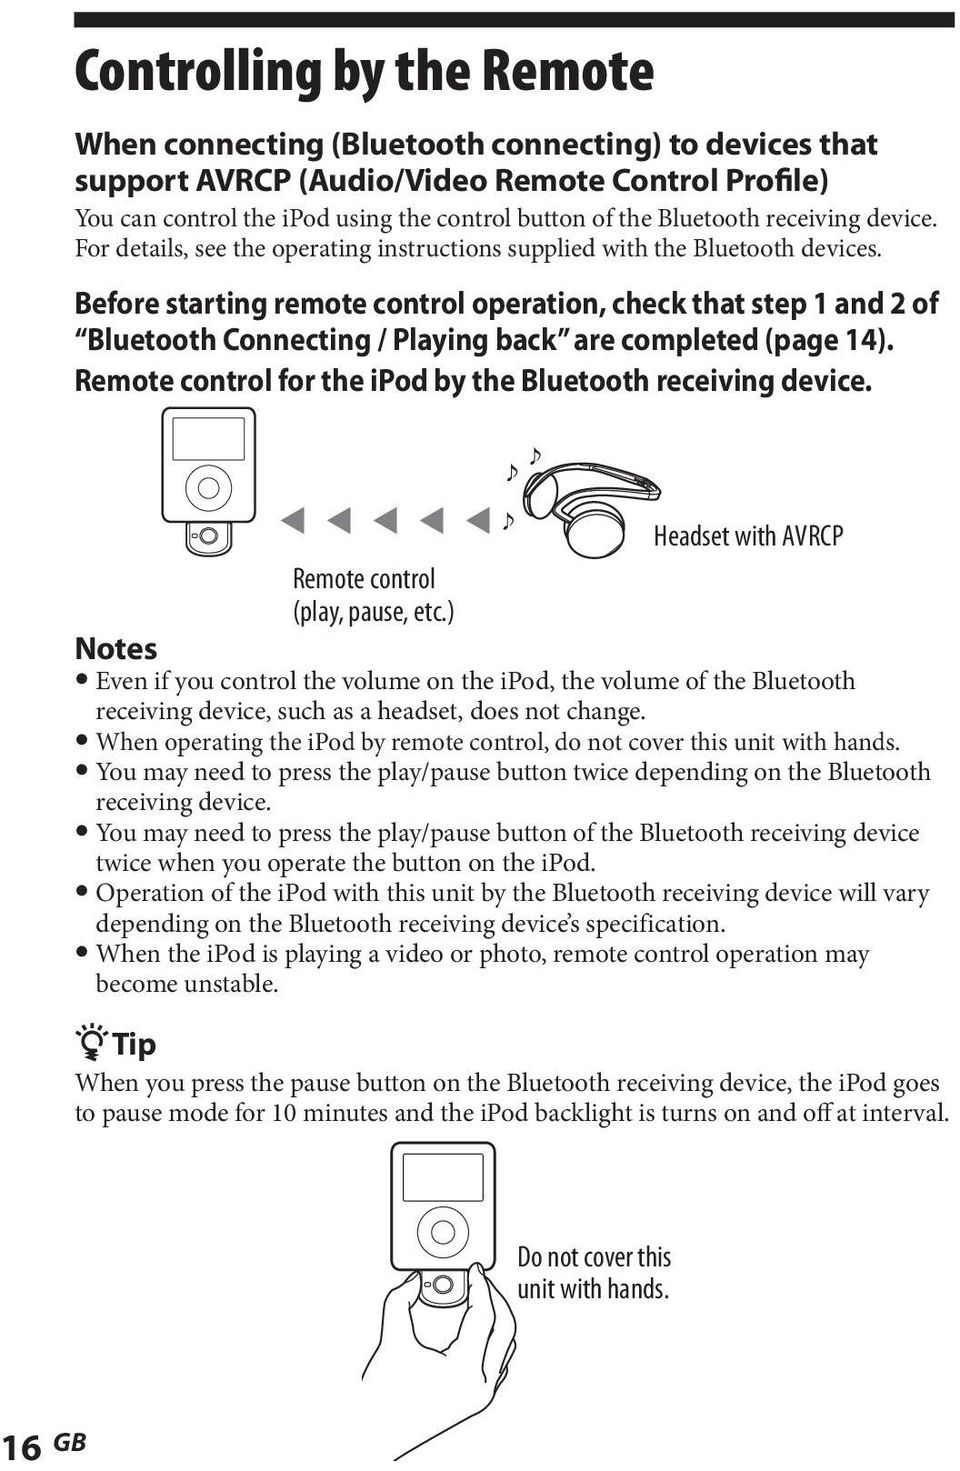 Before starting remote control operation, check that step 1 and 2 of Bluetooth Connecting / Playing back are completed (page 14). Remote control for the ipod by the Bluetooth receiving device.